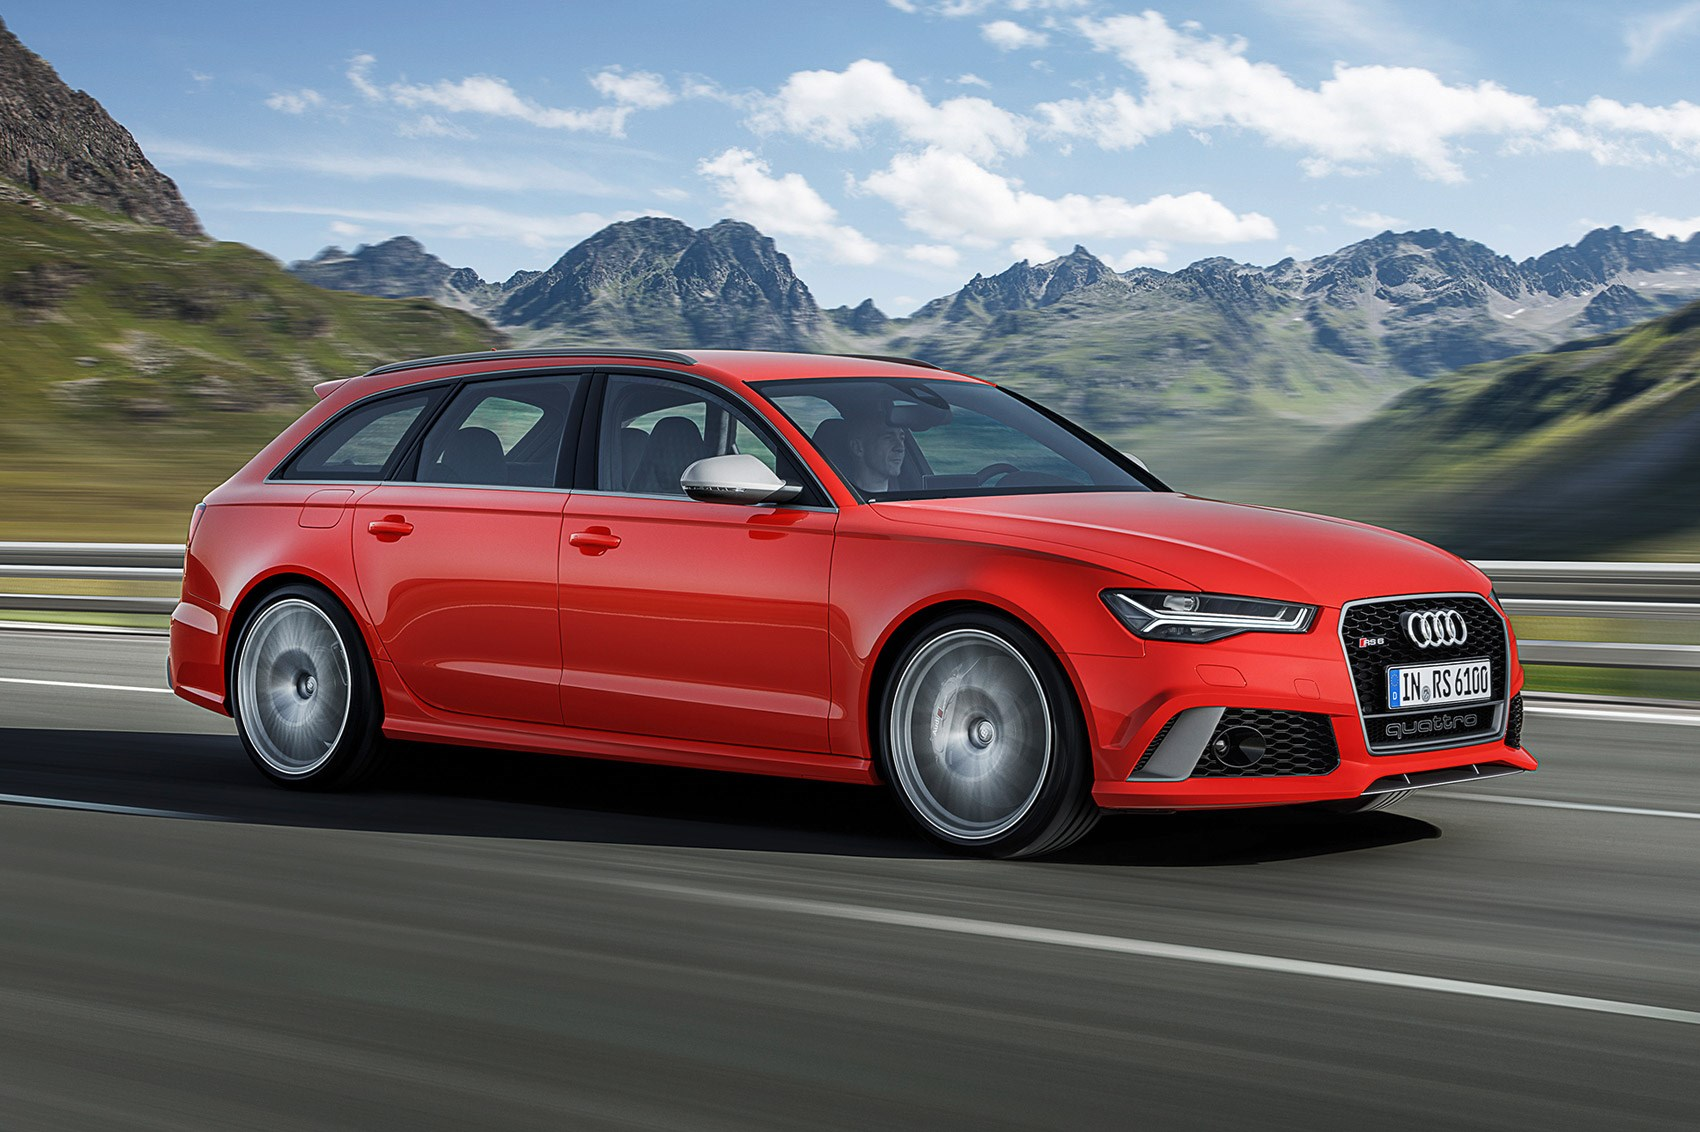 Audi RS6 Avant Performance first drive, CAR+ June 2016 by CAR Magazine